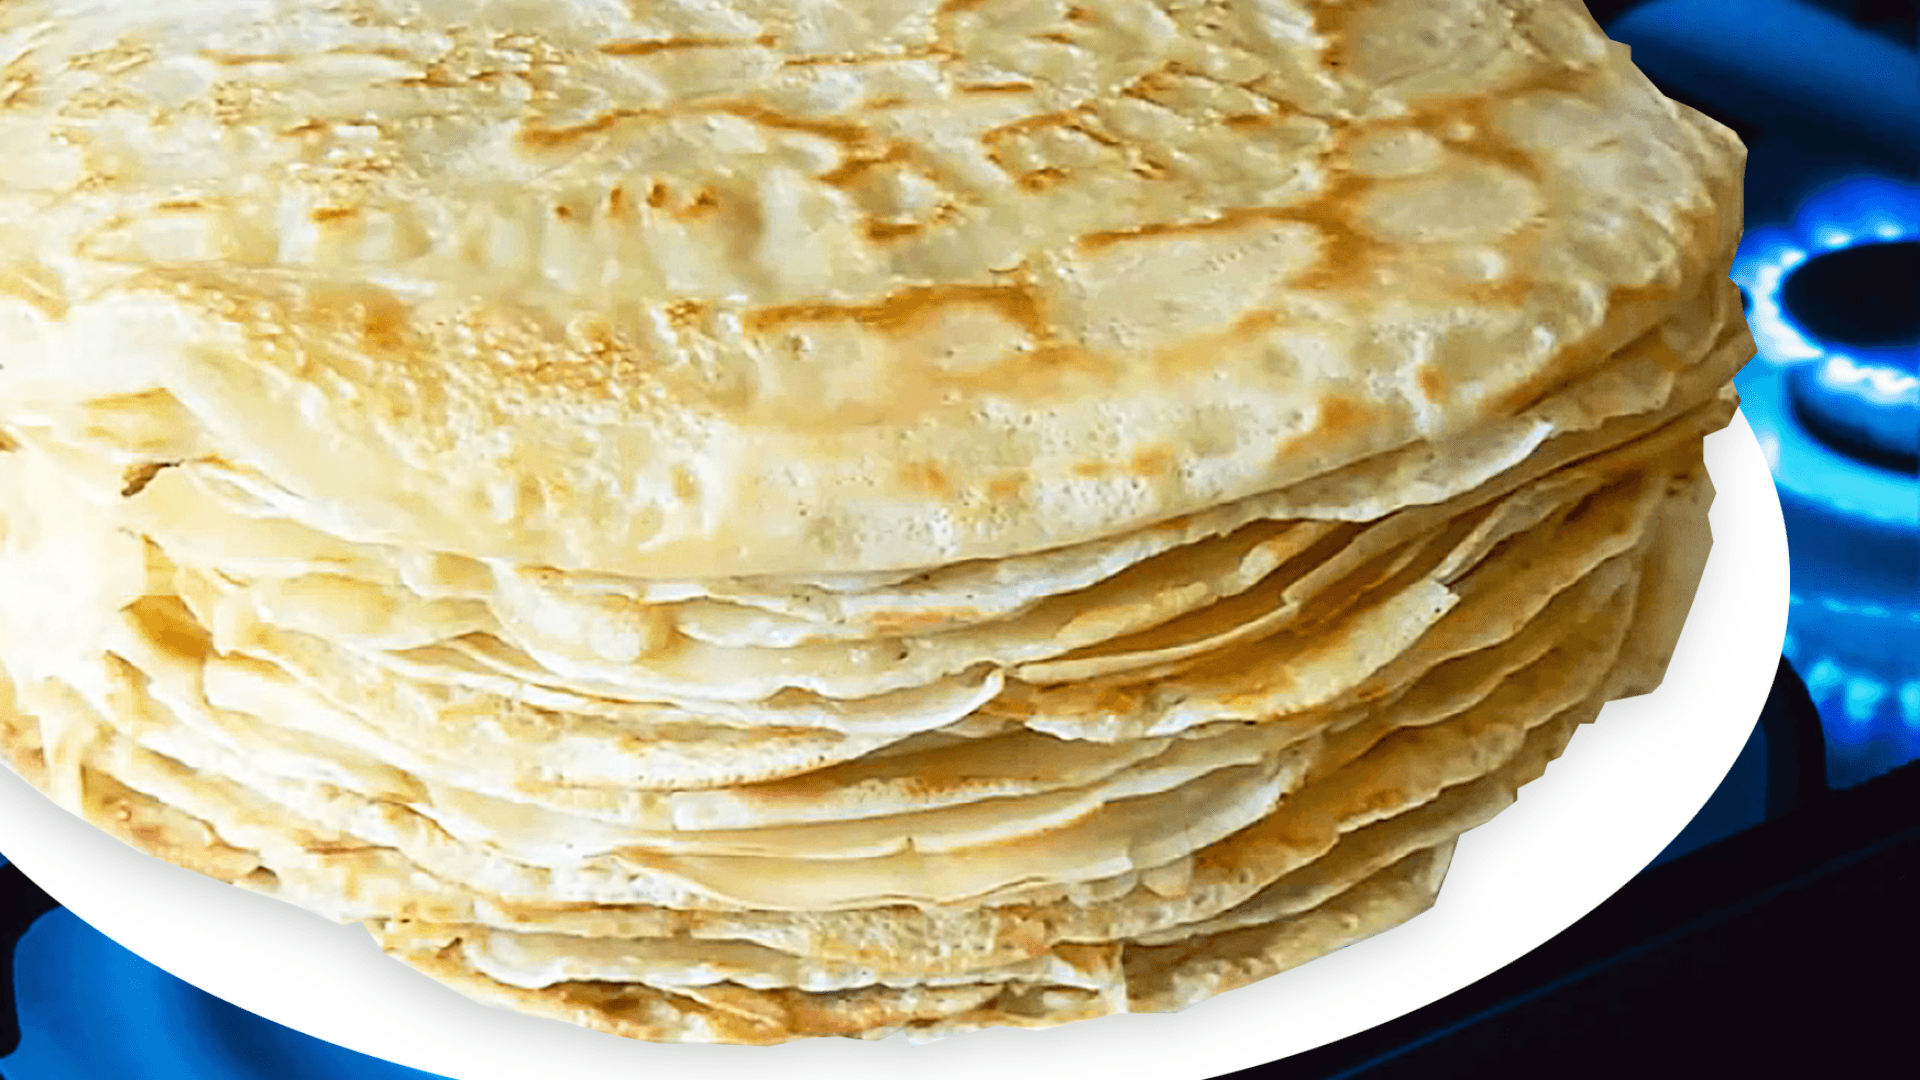 Basic French Crepes with Milk